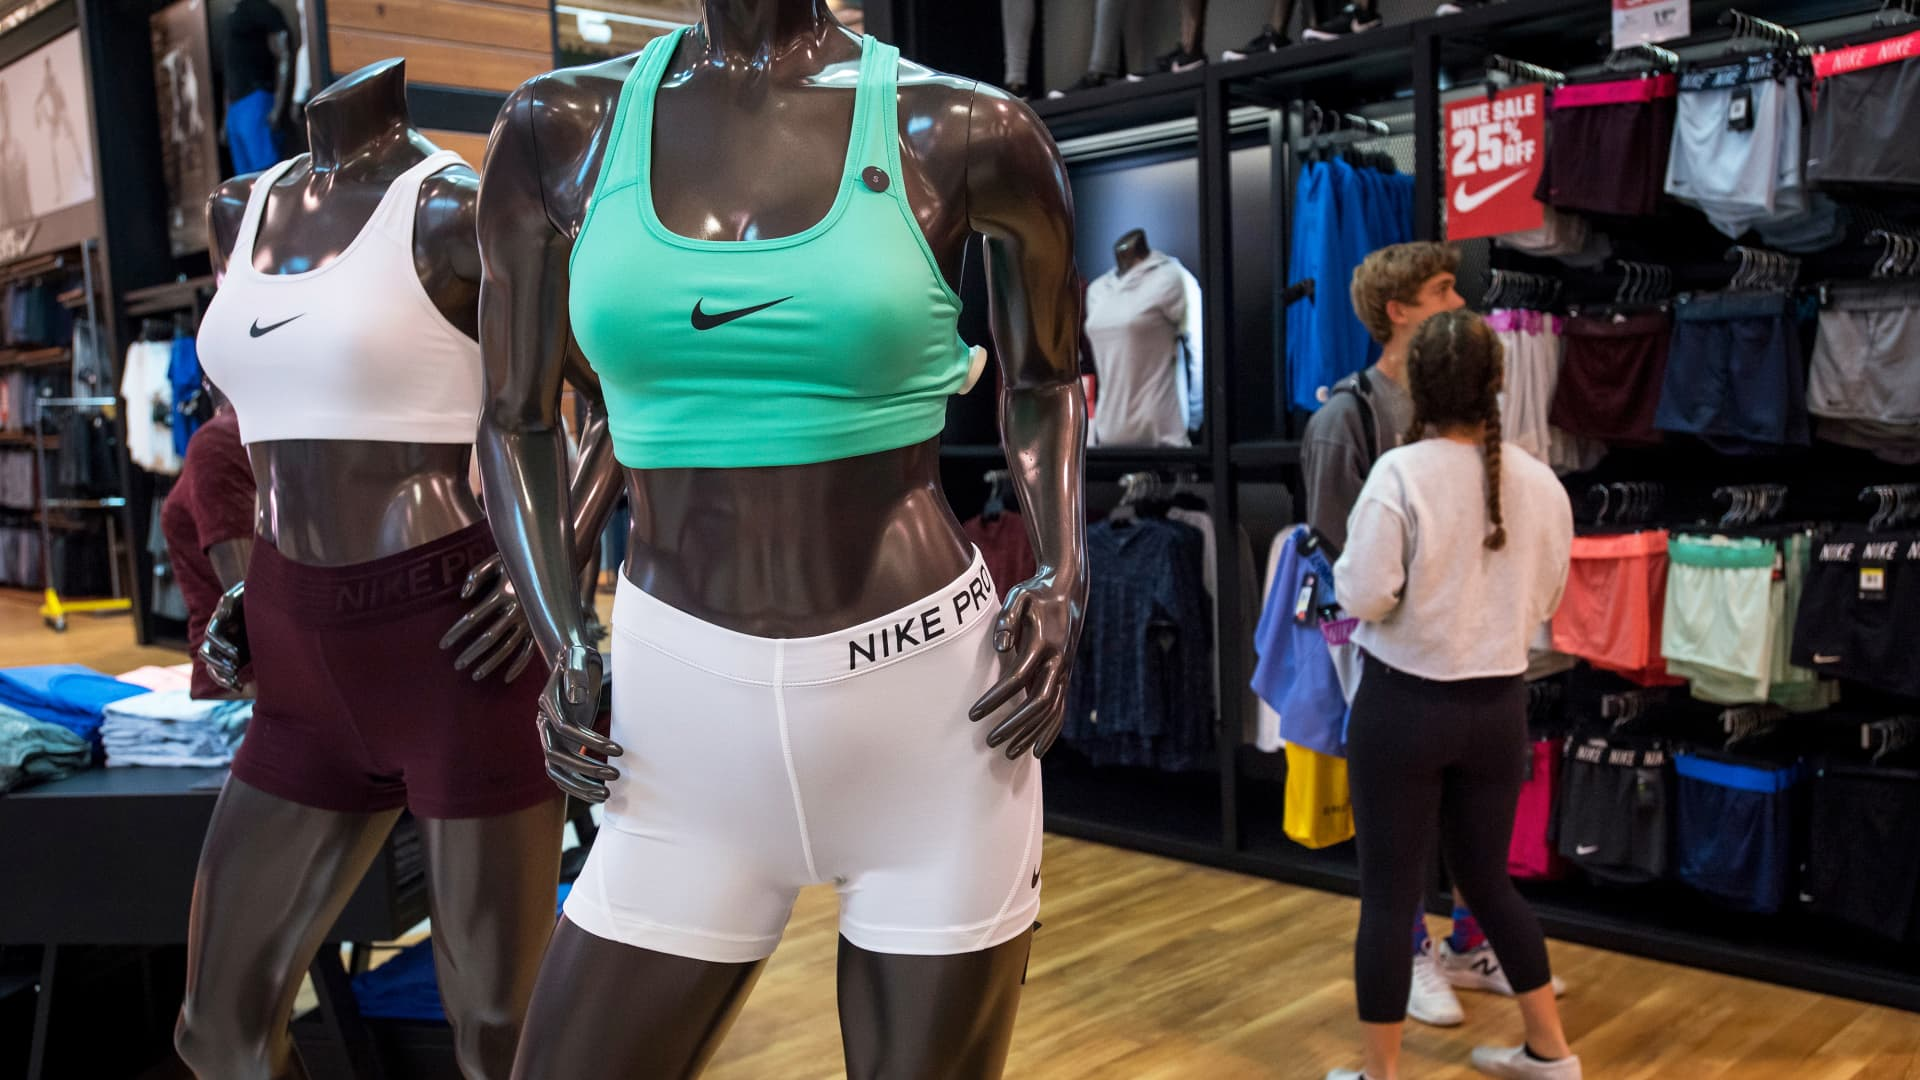 Nike athletic wear is seen on mannequins displayed at a Dick's Sporting Goods store in Daly City, California.